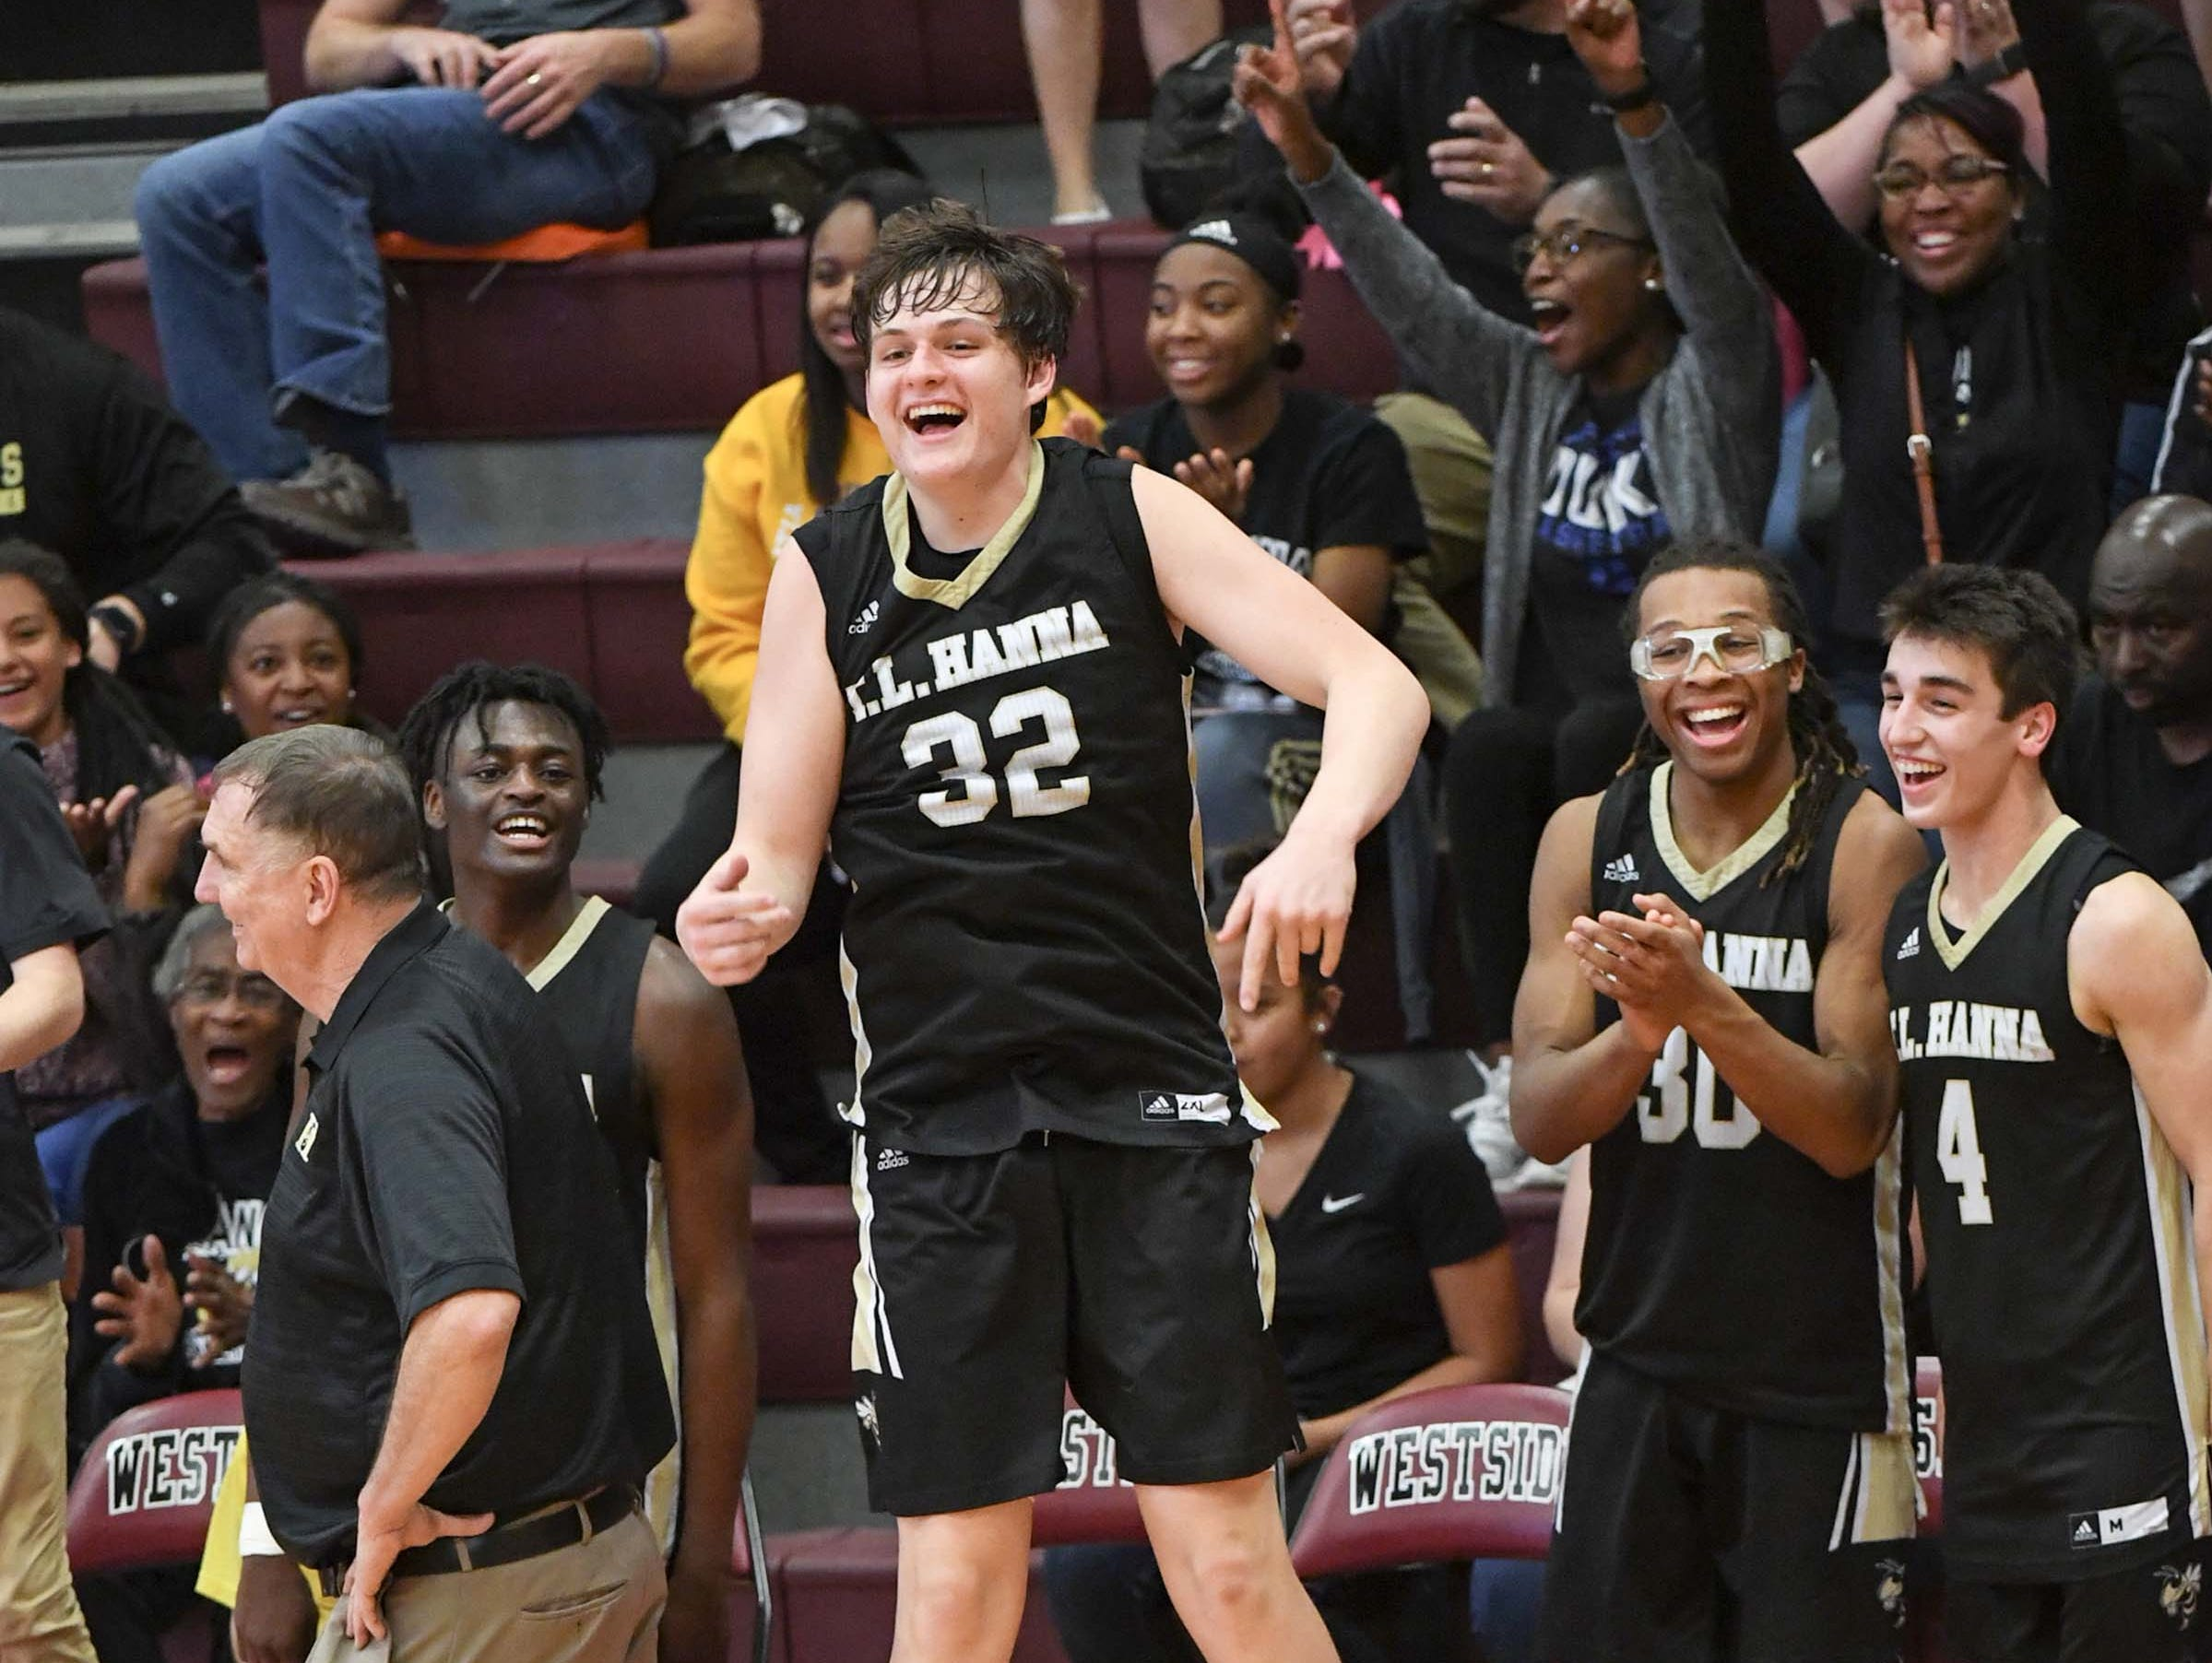 TL Hanna junior John Haddock Rogers(32) and teammates celebrate in the closing seconds of a 70-45 win at Westside High School in Anderson Friday.